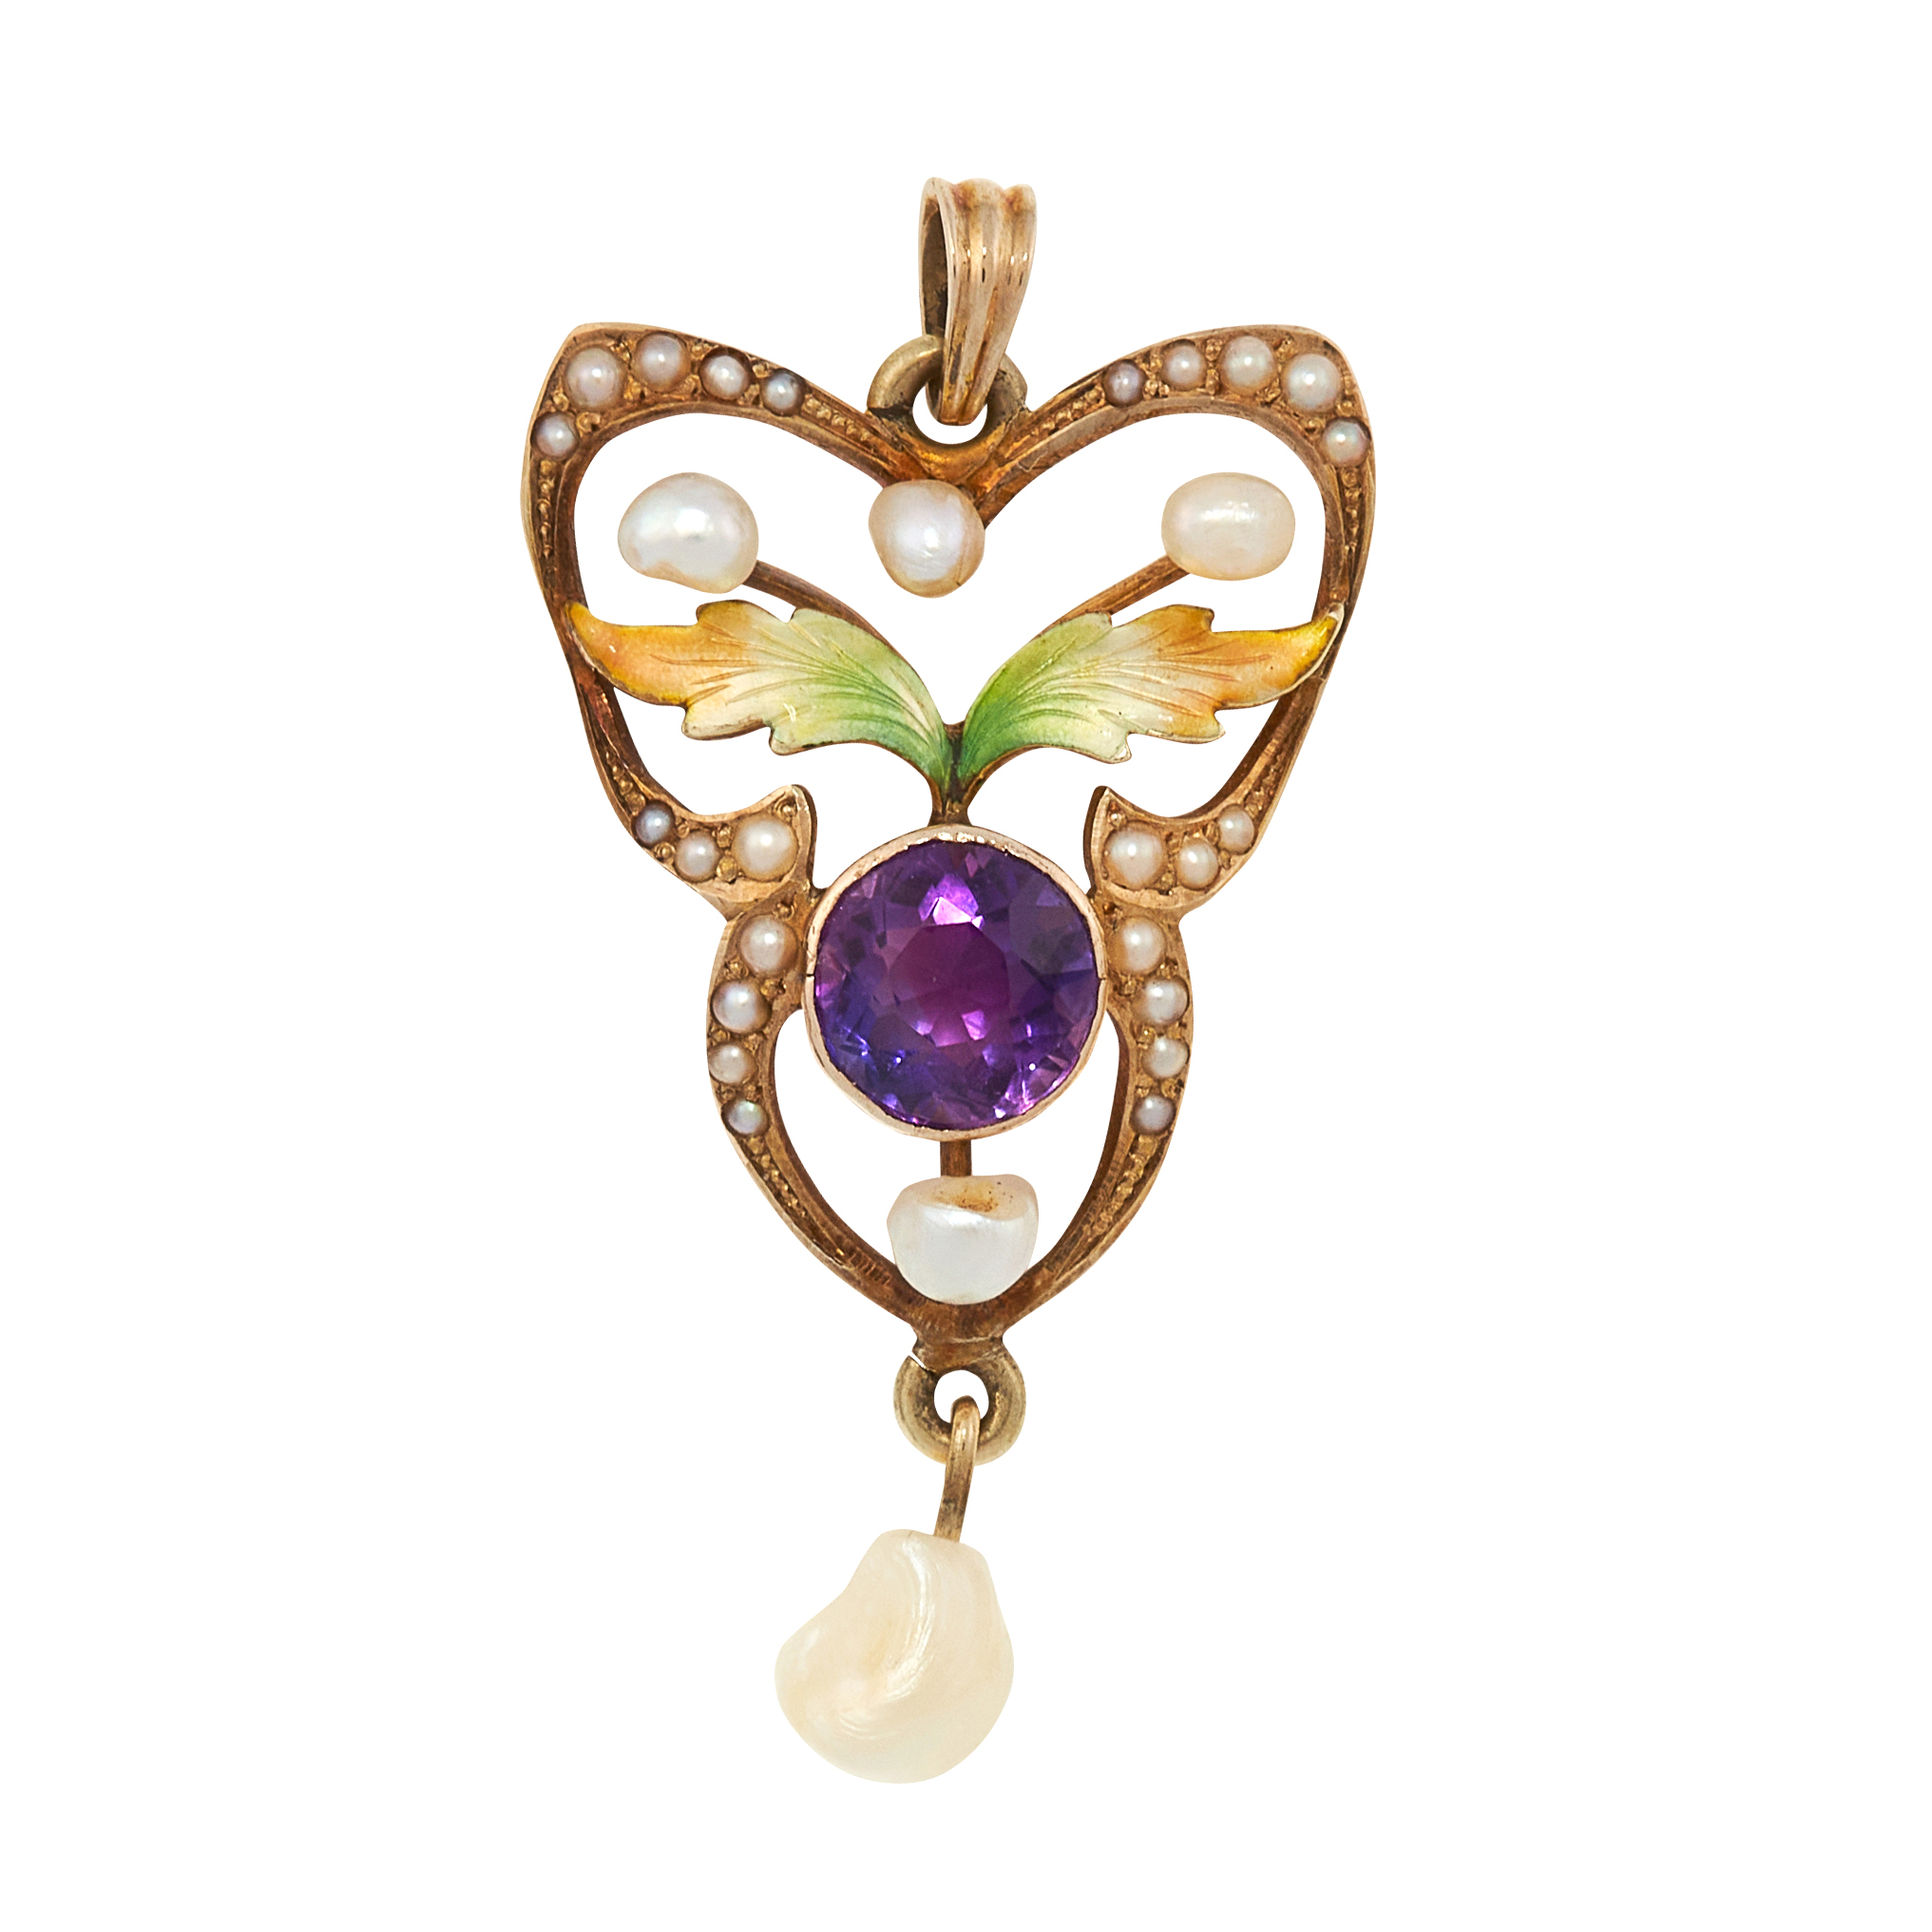 AN ANTIQUE AMETHYST, PEARL AND ENAMEL SUFFRAGETTE PENDANT, CIRC 1900 in yellow gold, set with a